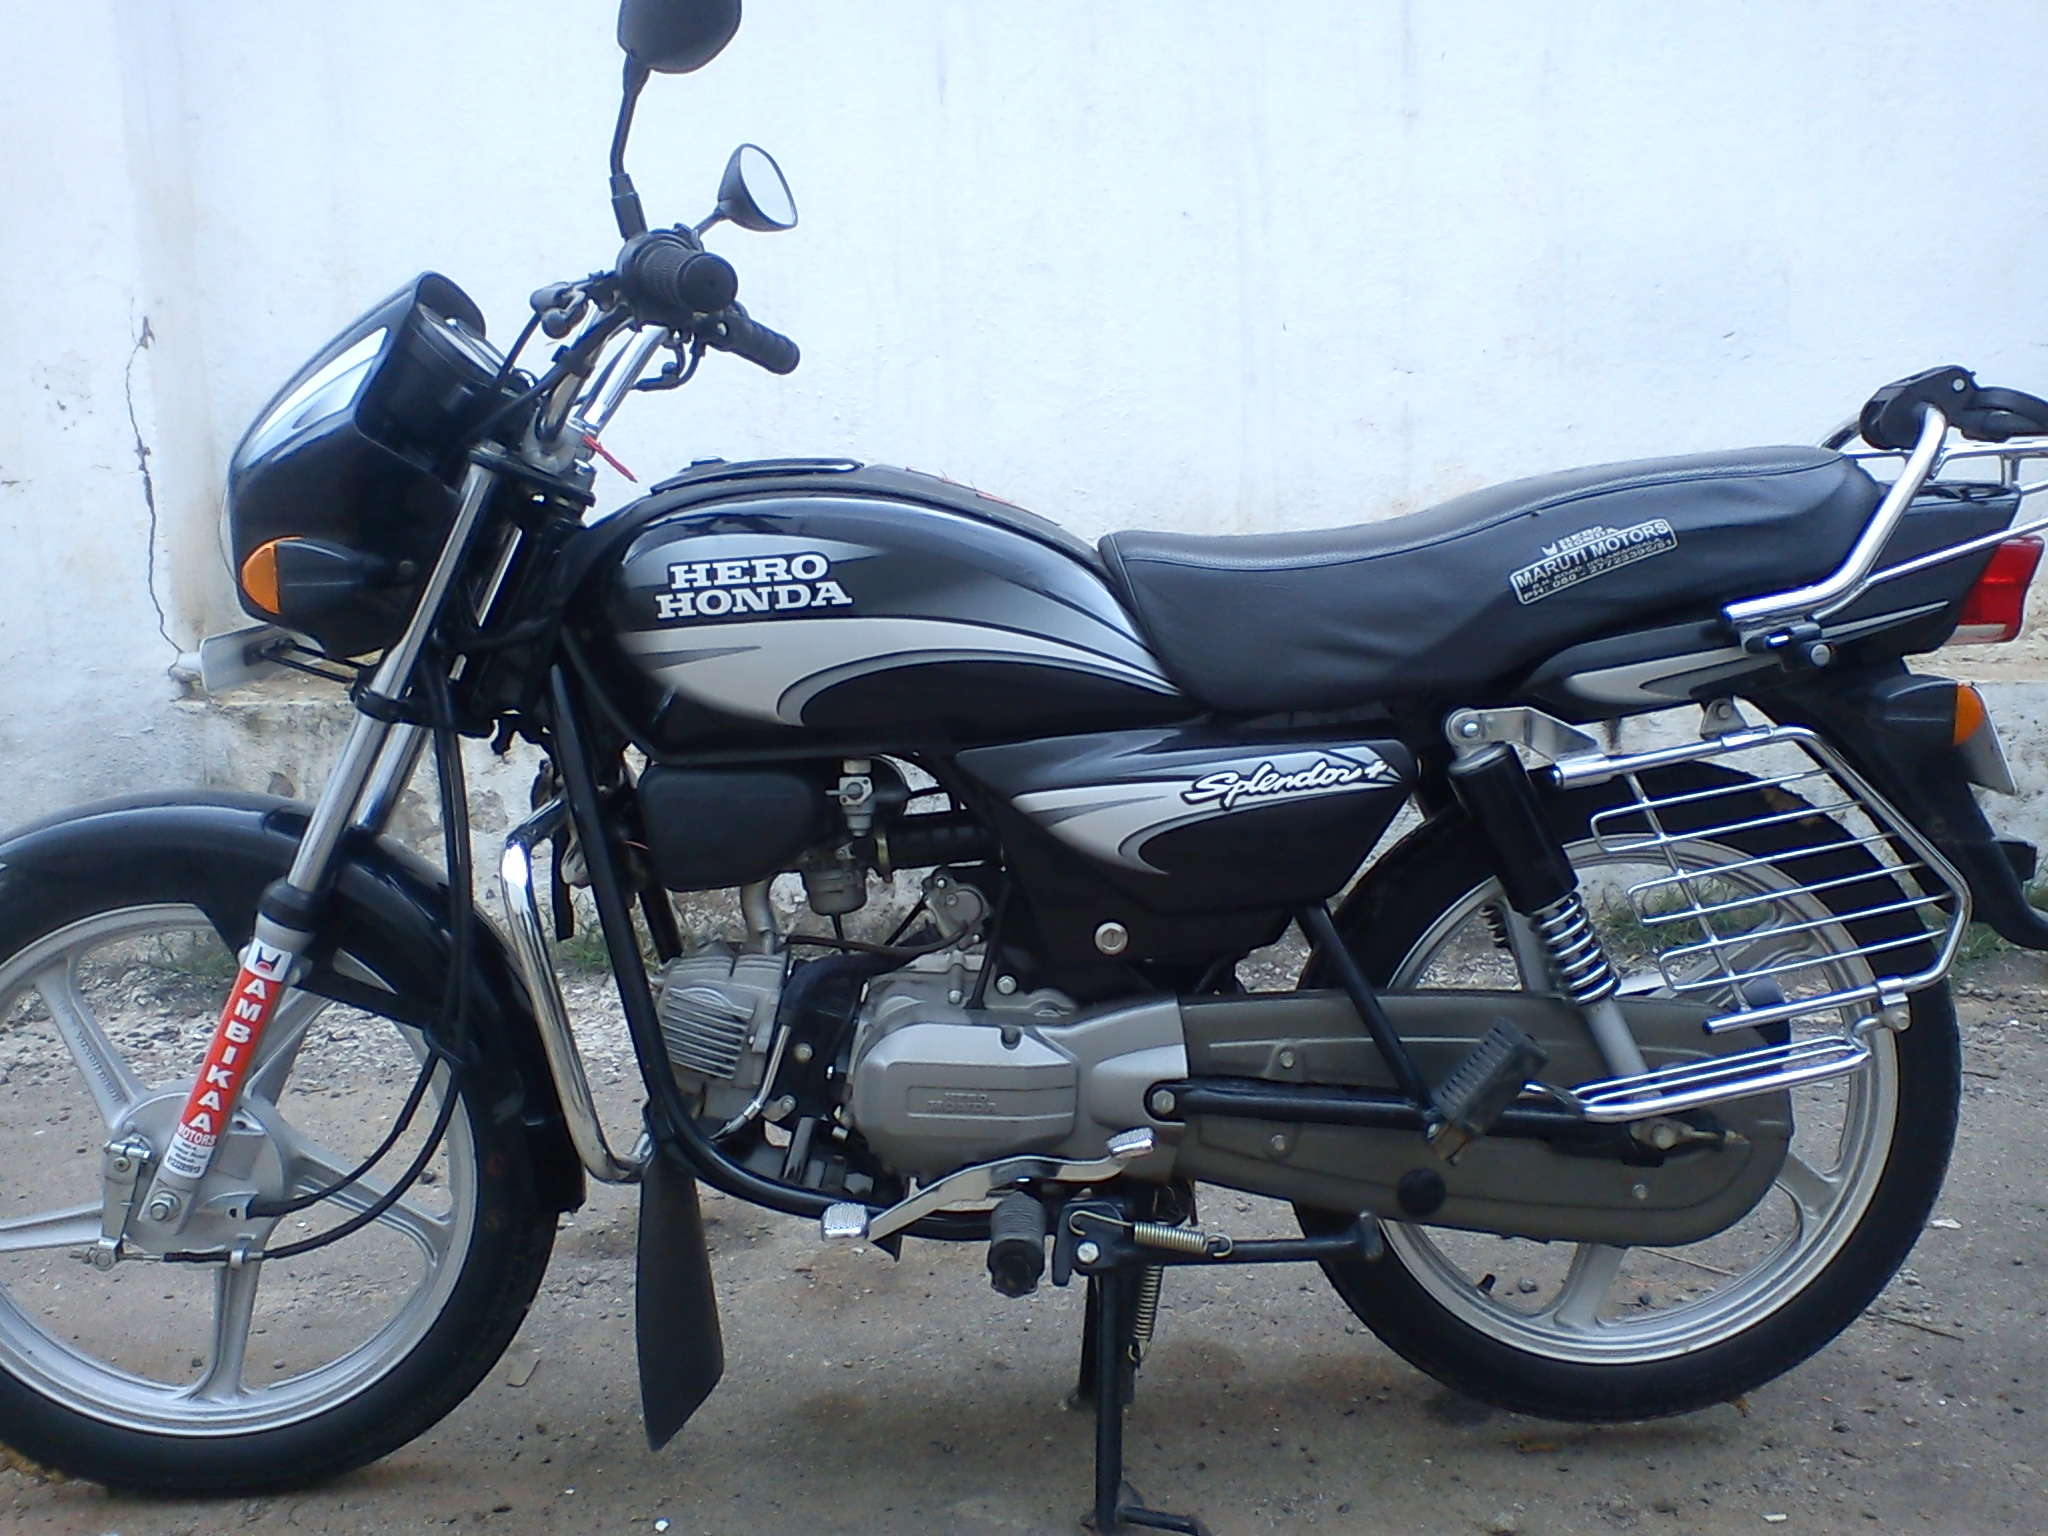 Hero Honda Splendor 2007 images #95887